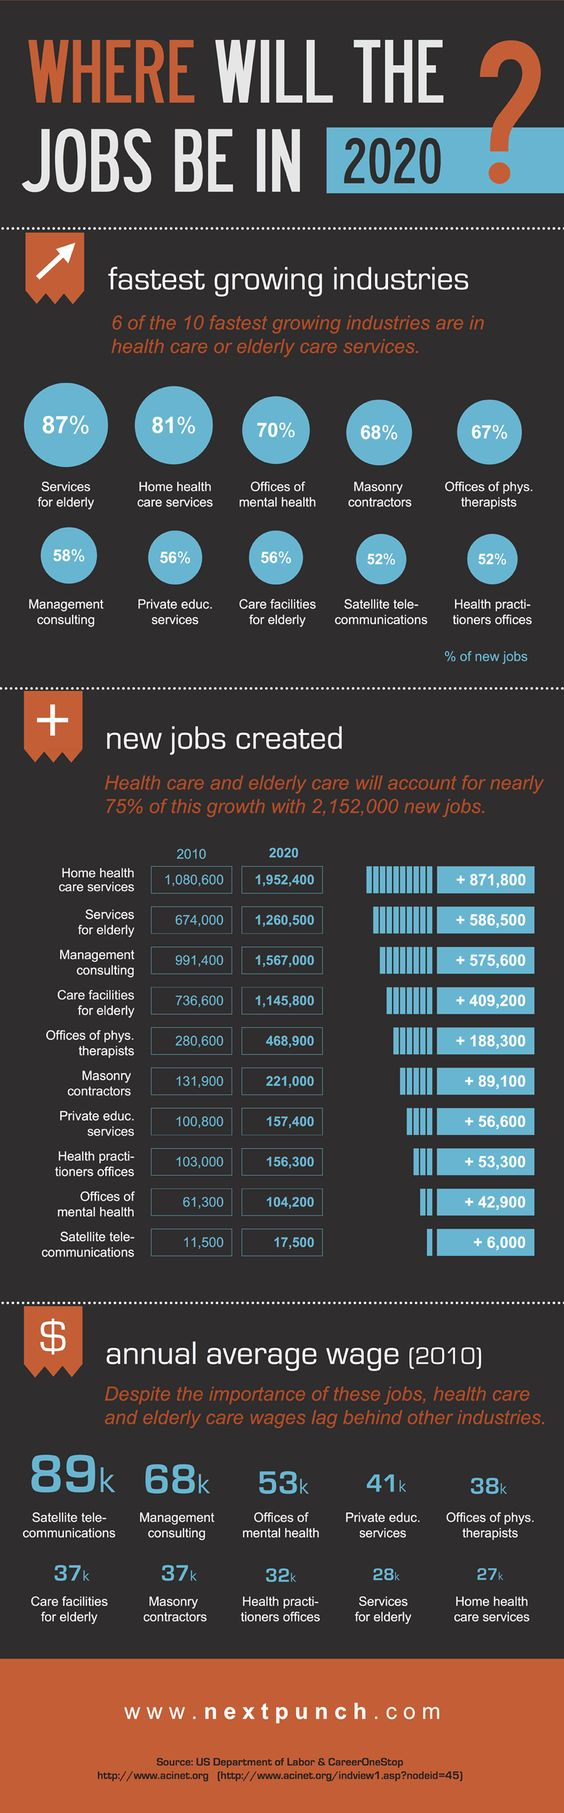 Where Will the Jobs be in 2020? #infographic #Jobs #Career: